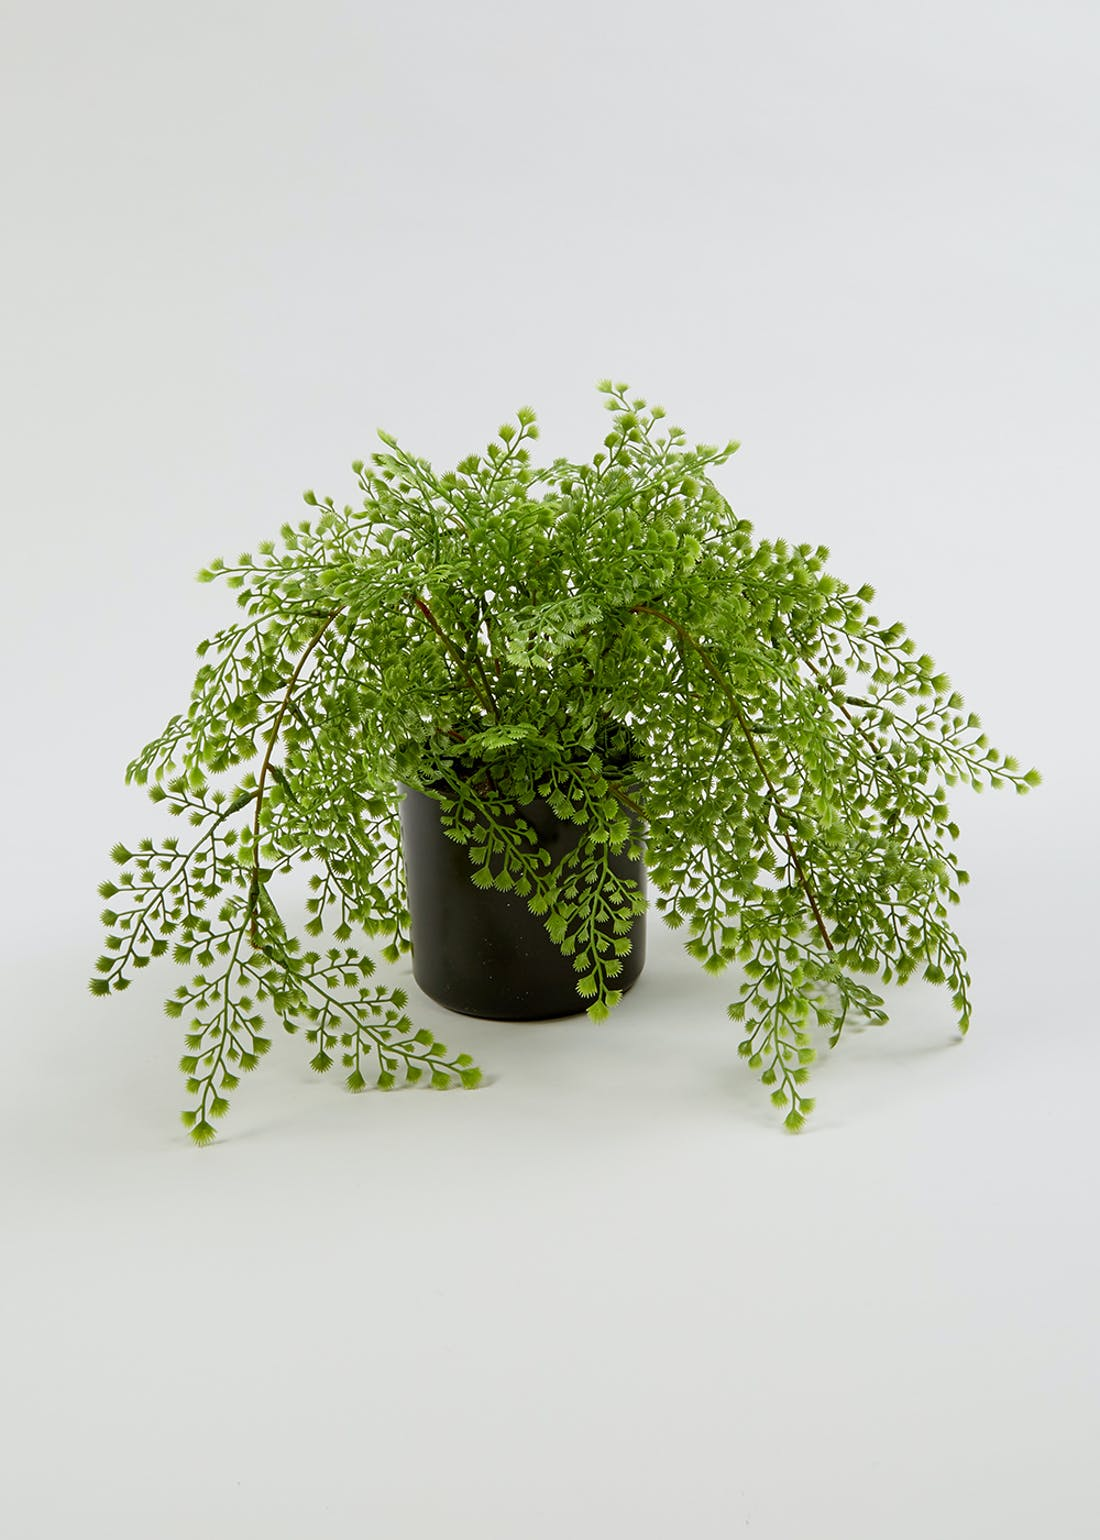 Maidenhair Plant in Pot (45cm x 45cm x 28cm)